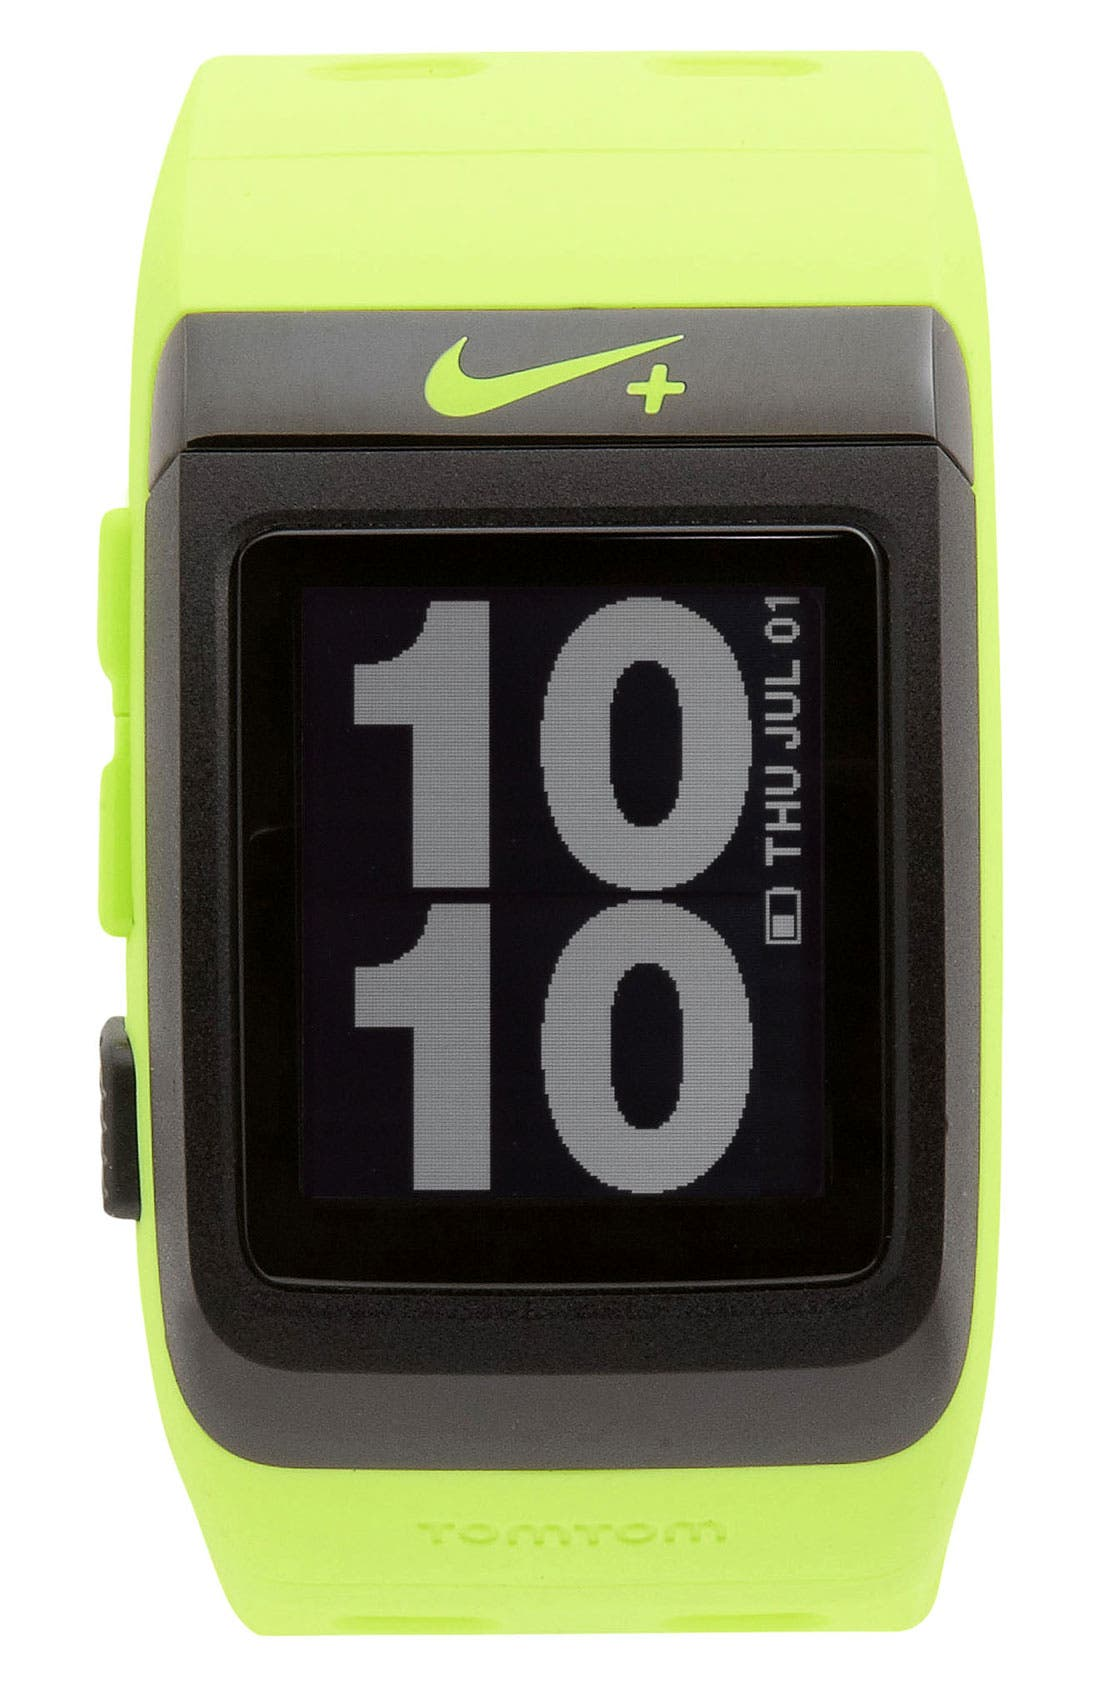 Alternate Image 1 Selected - Nike+ Sport Watch GPS, 35mm x 50mm